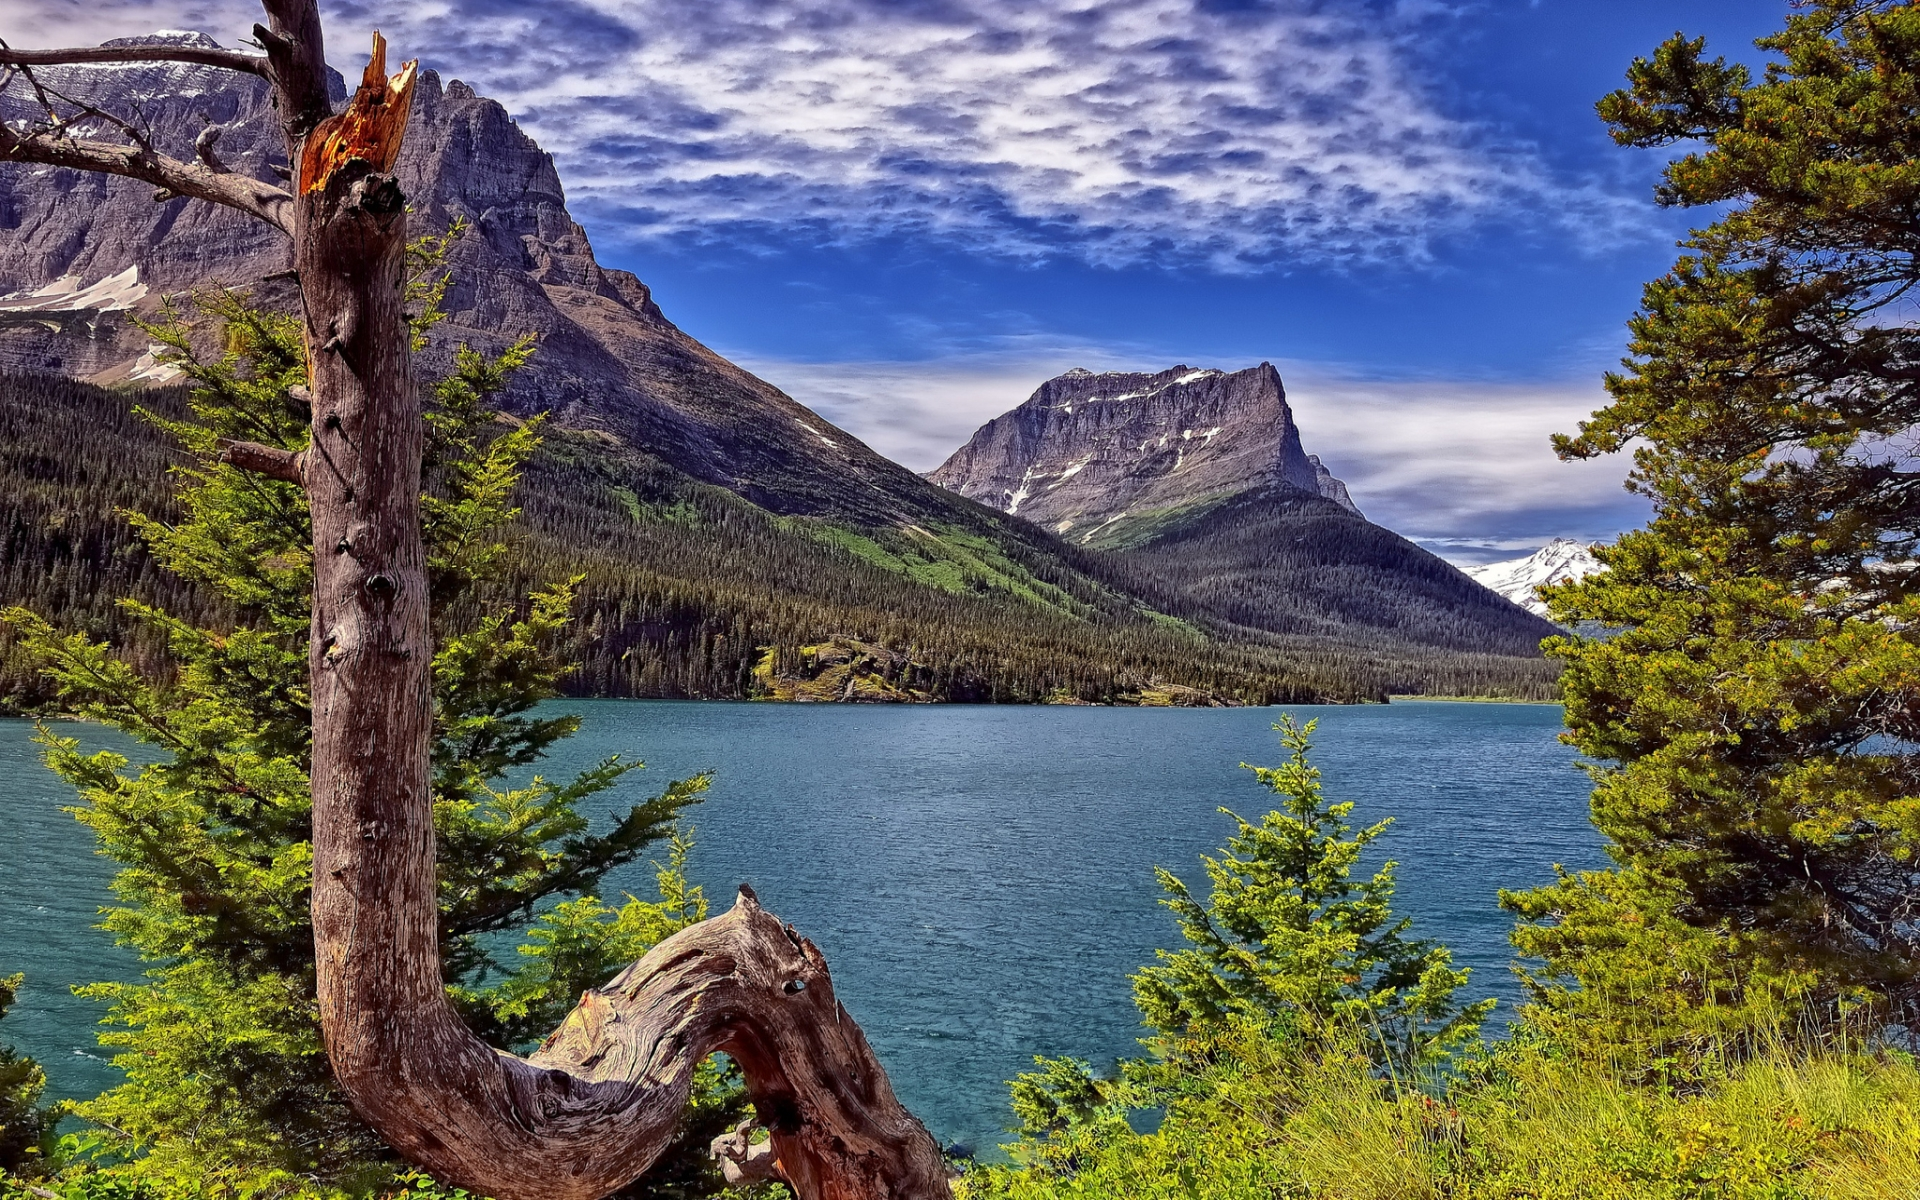 Saint Mary Lake Full HD Wallpaper And Background Image